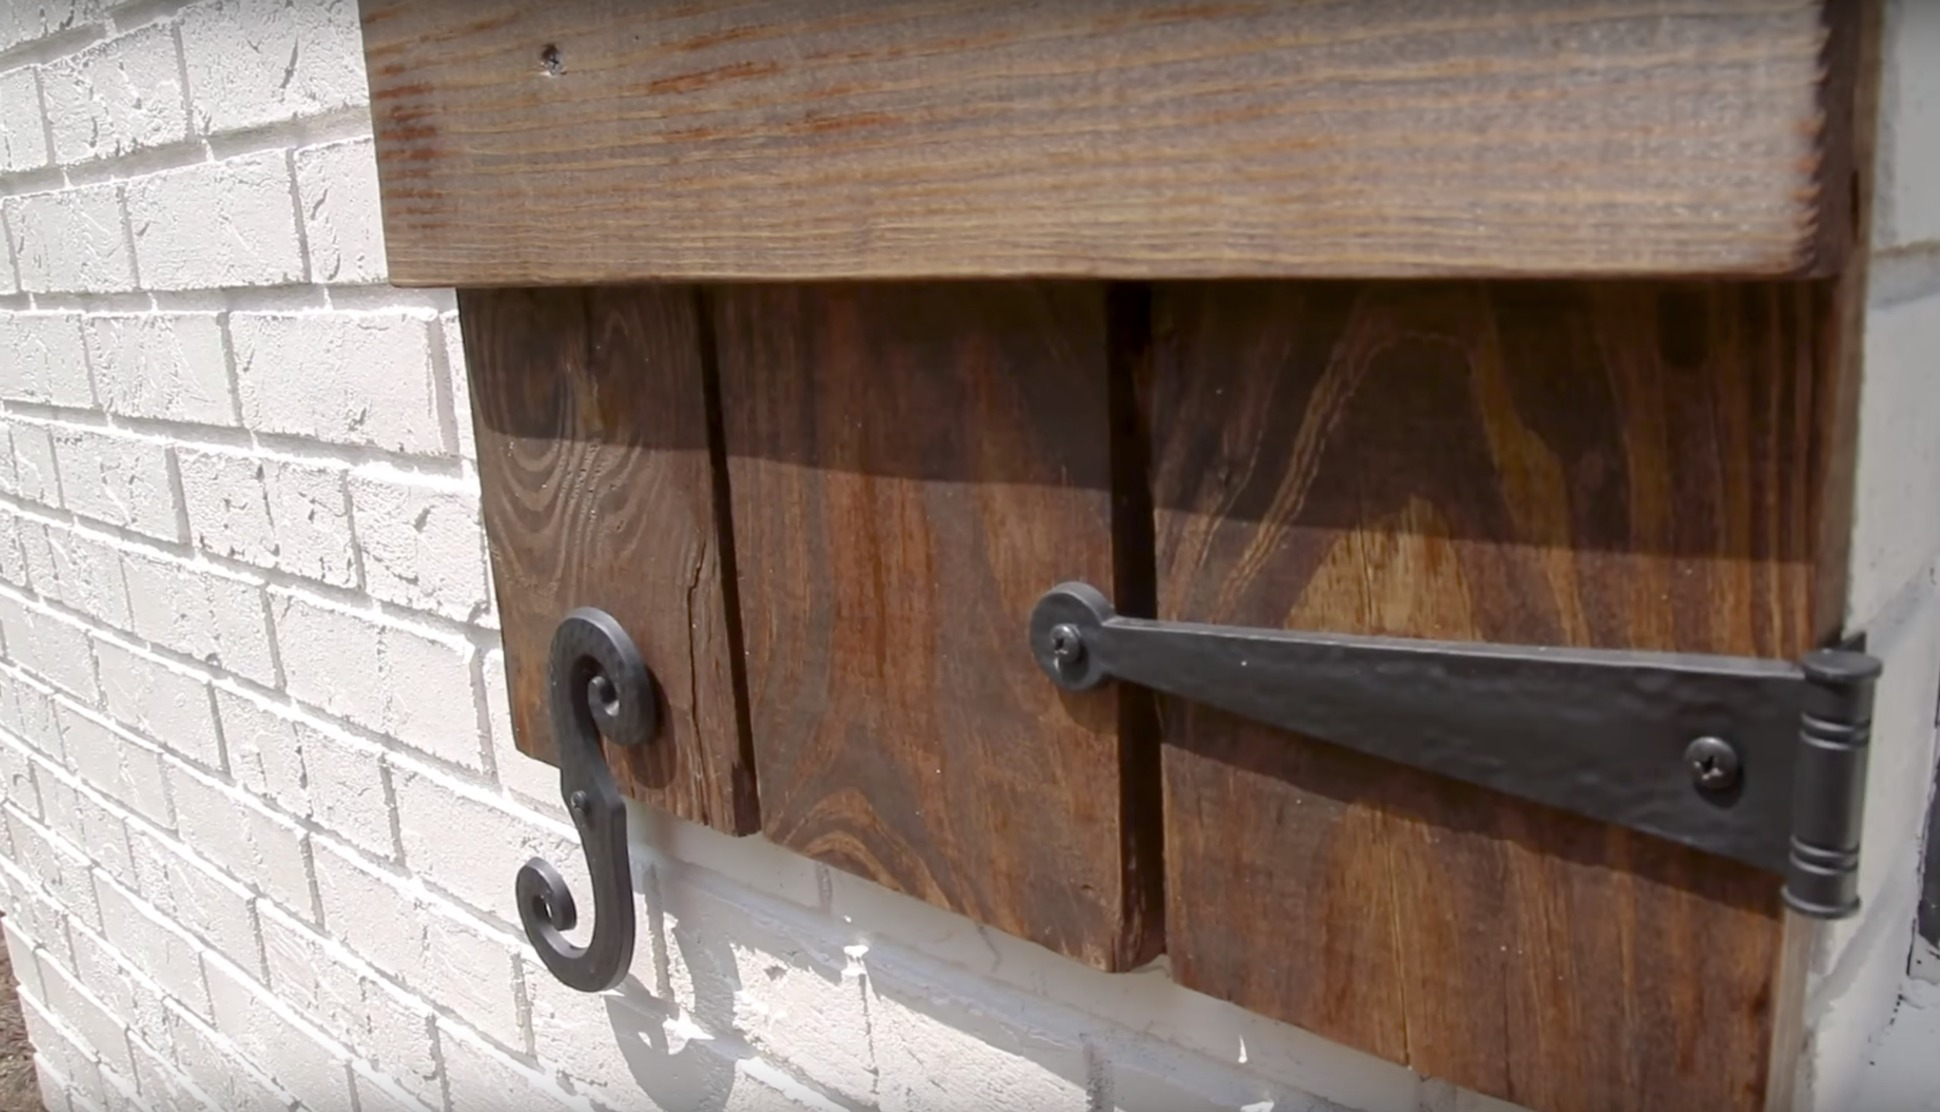 Diy Shutters Home Improvement Woodworking Series By Stone